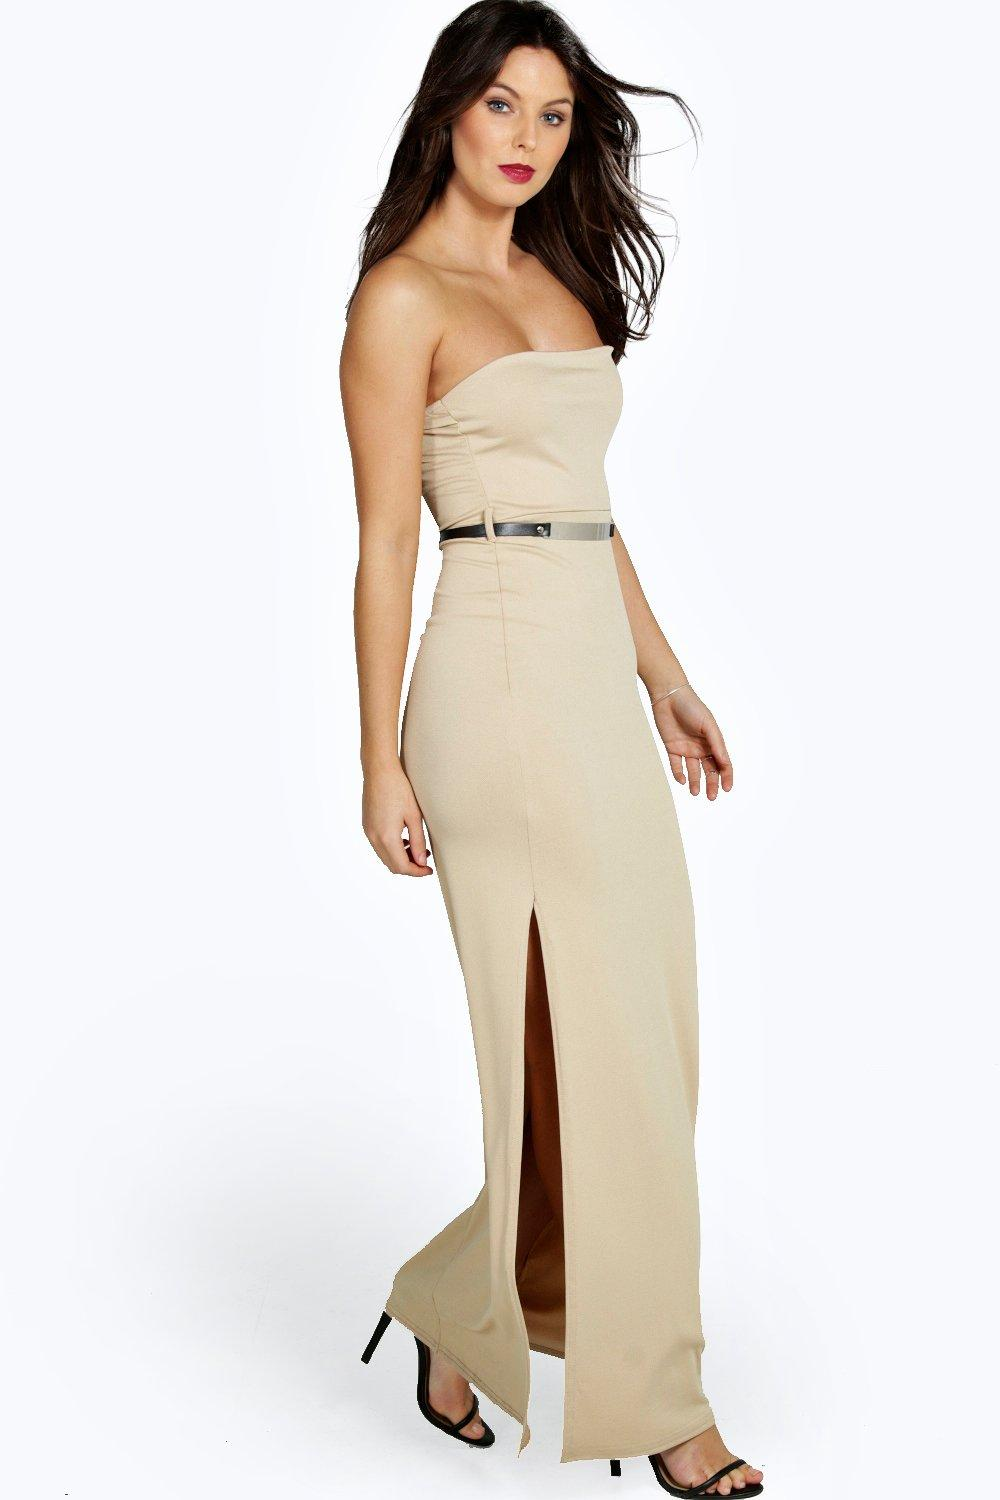 Sophie Bandeau Belted Front Split Maxi Dress